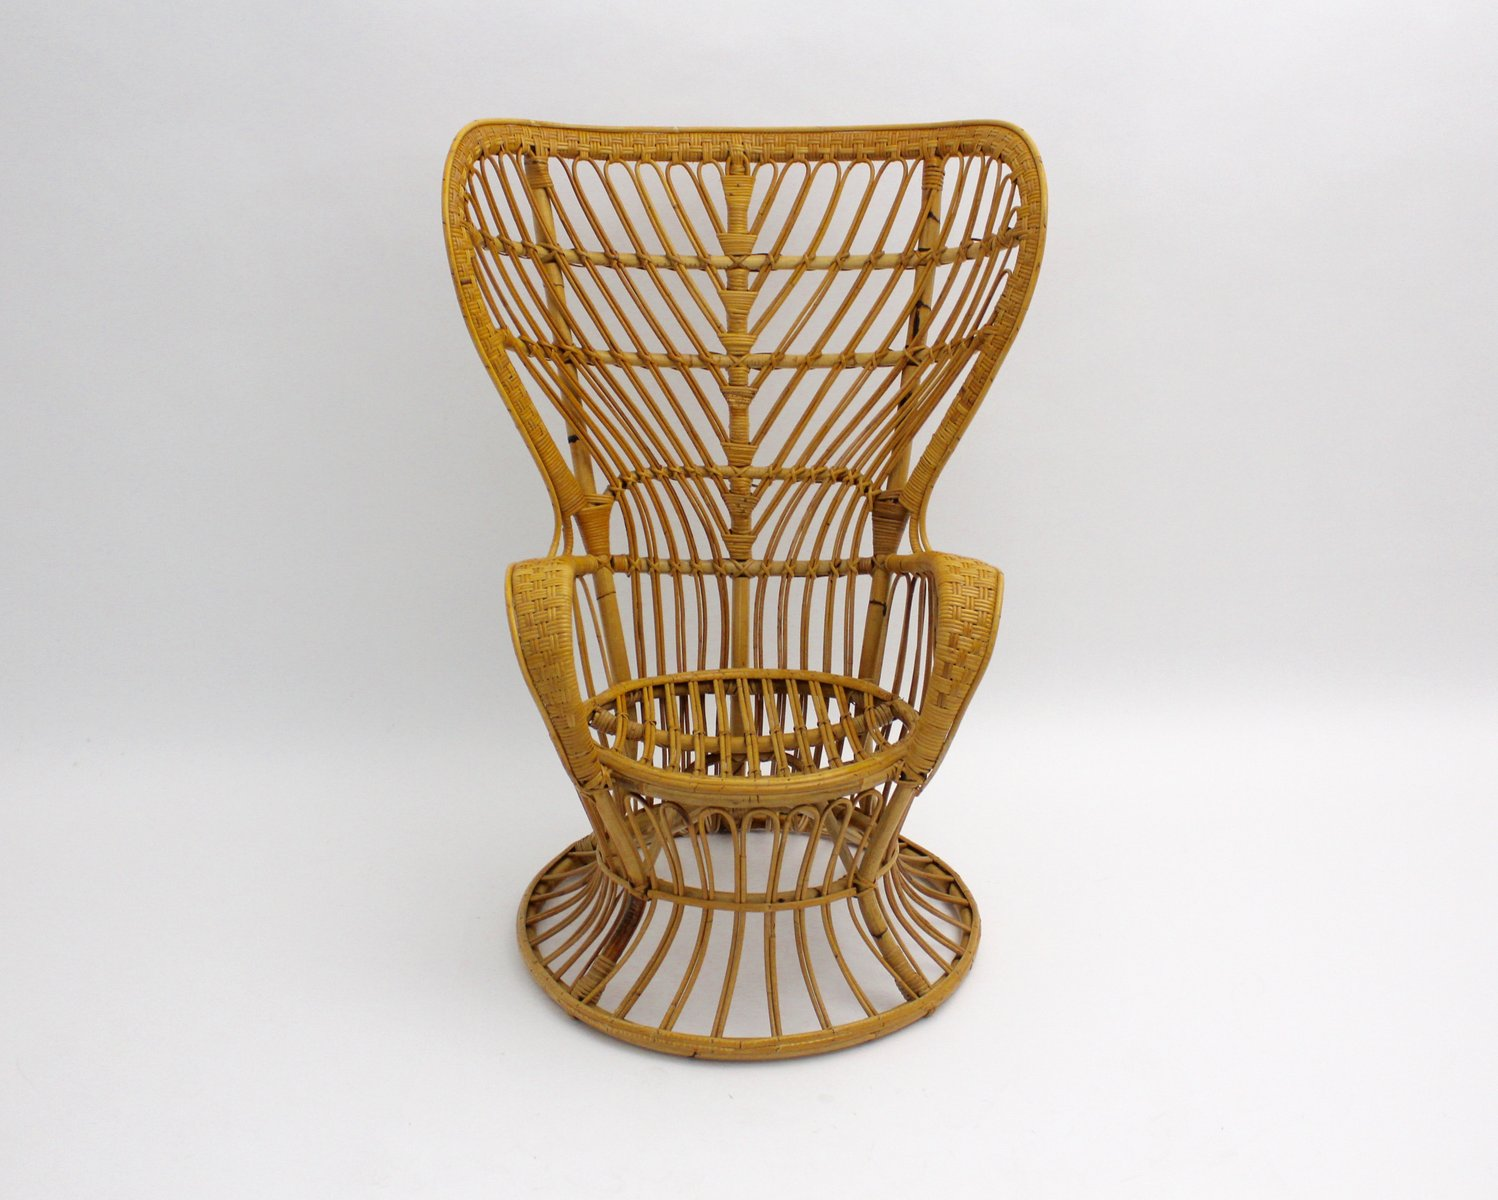 Attractive Italian Rattan Peacock Chair By Lio Carminati